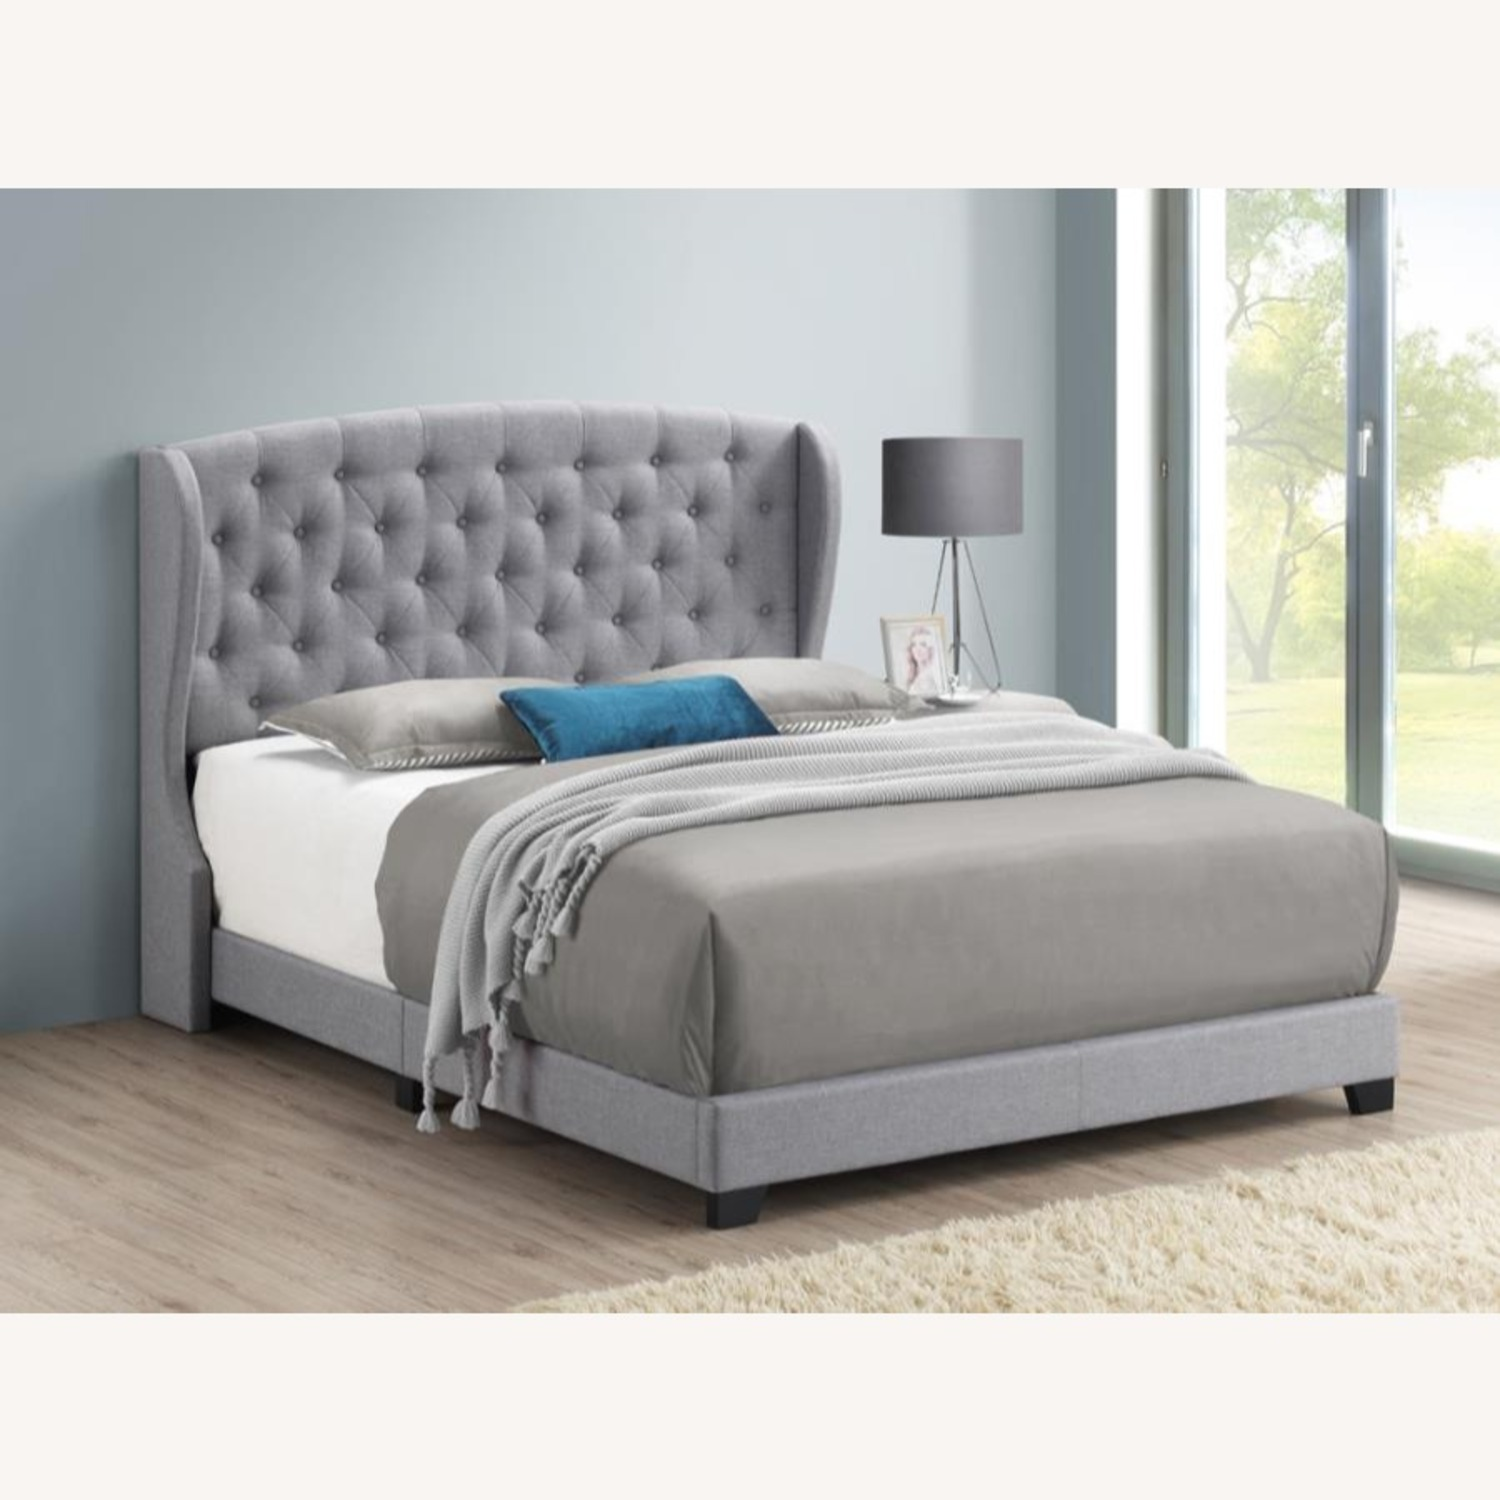 Queen Bed In Grey Linen-Like Fabric Upholstery - image-3